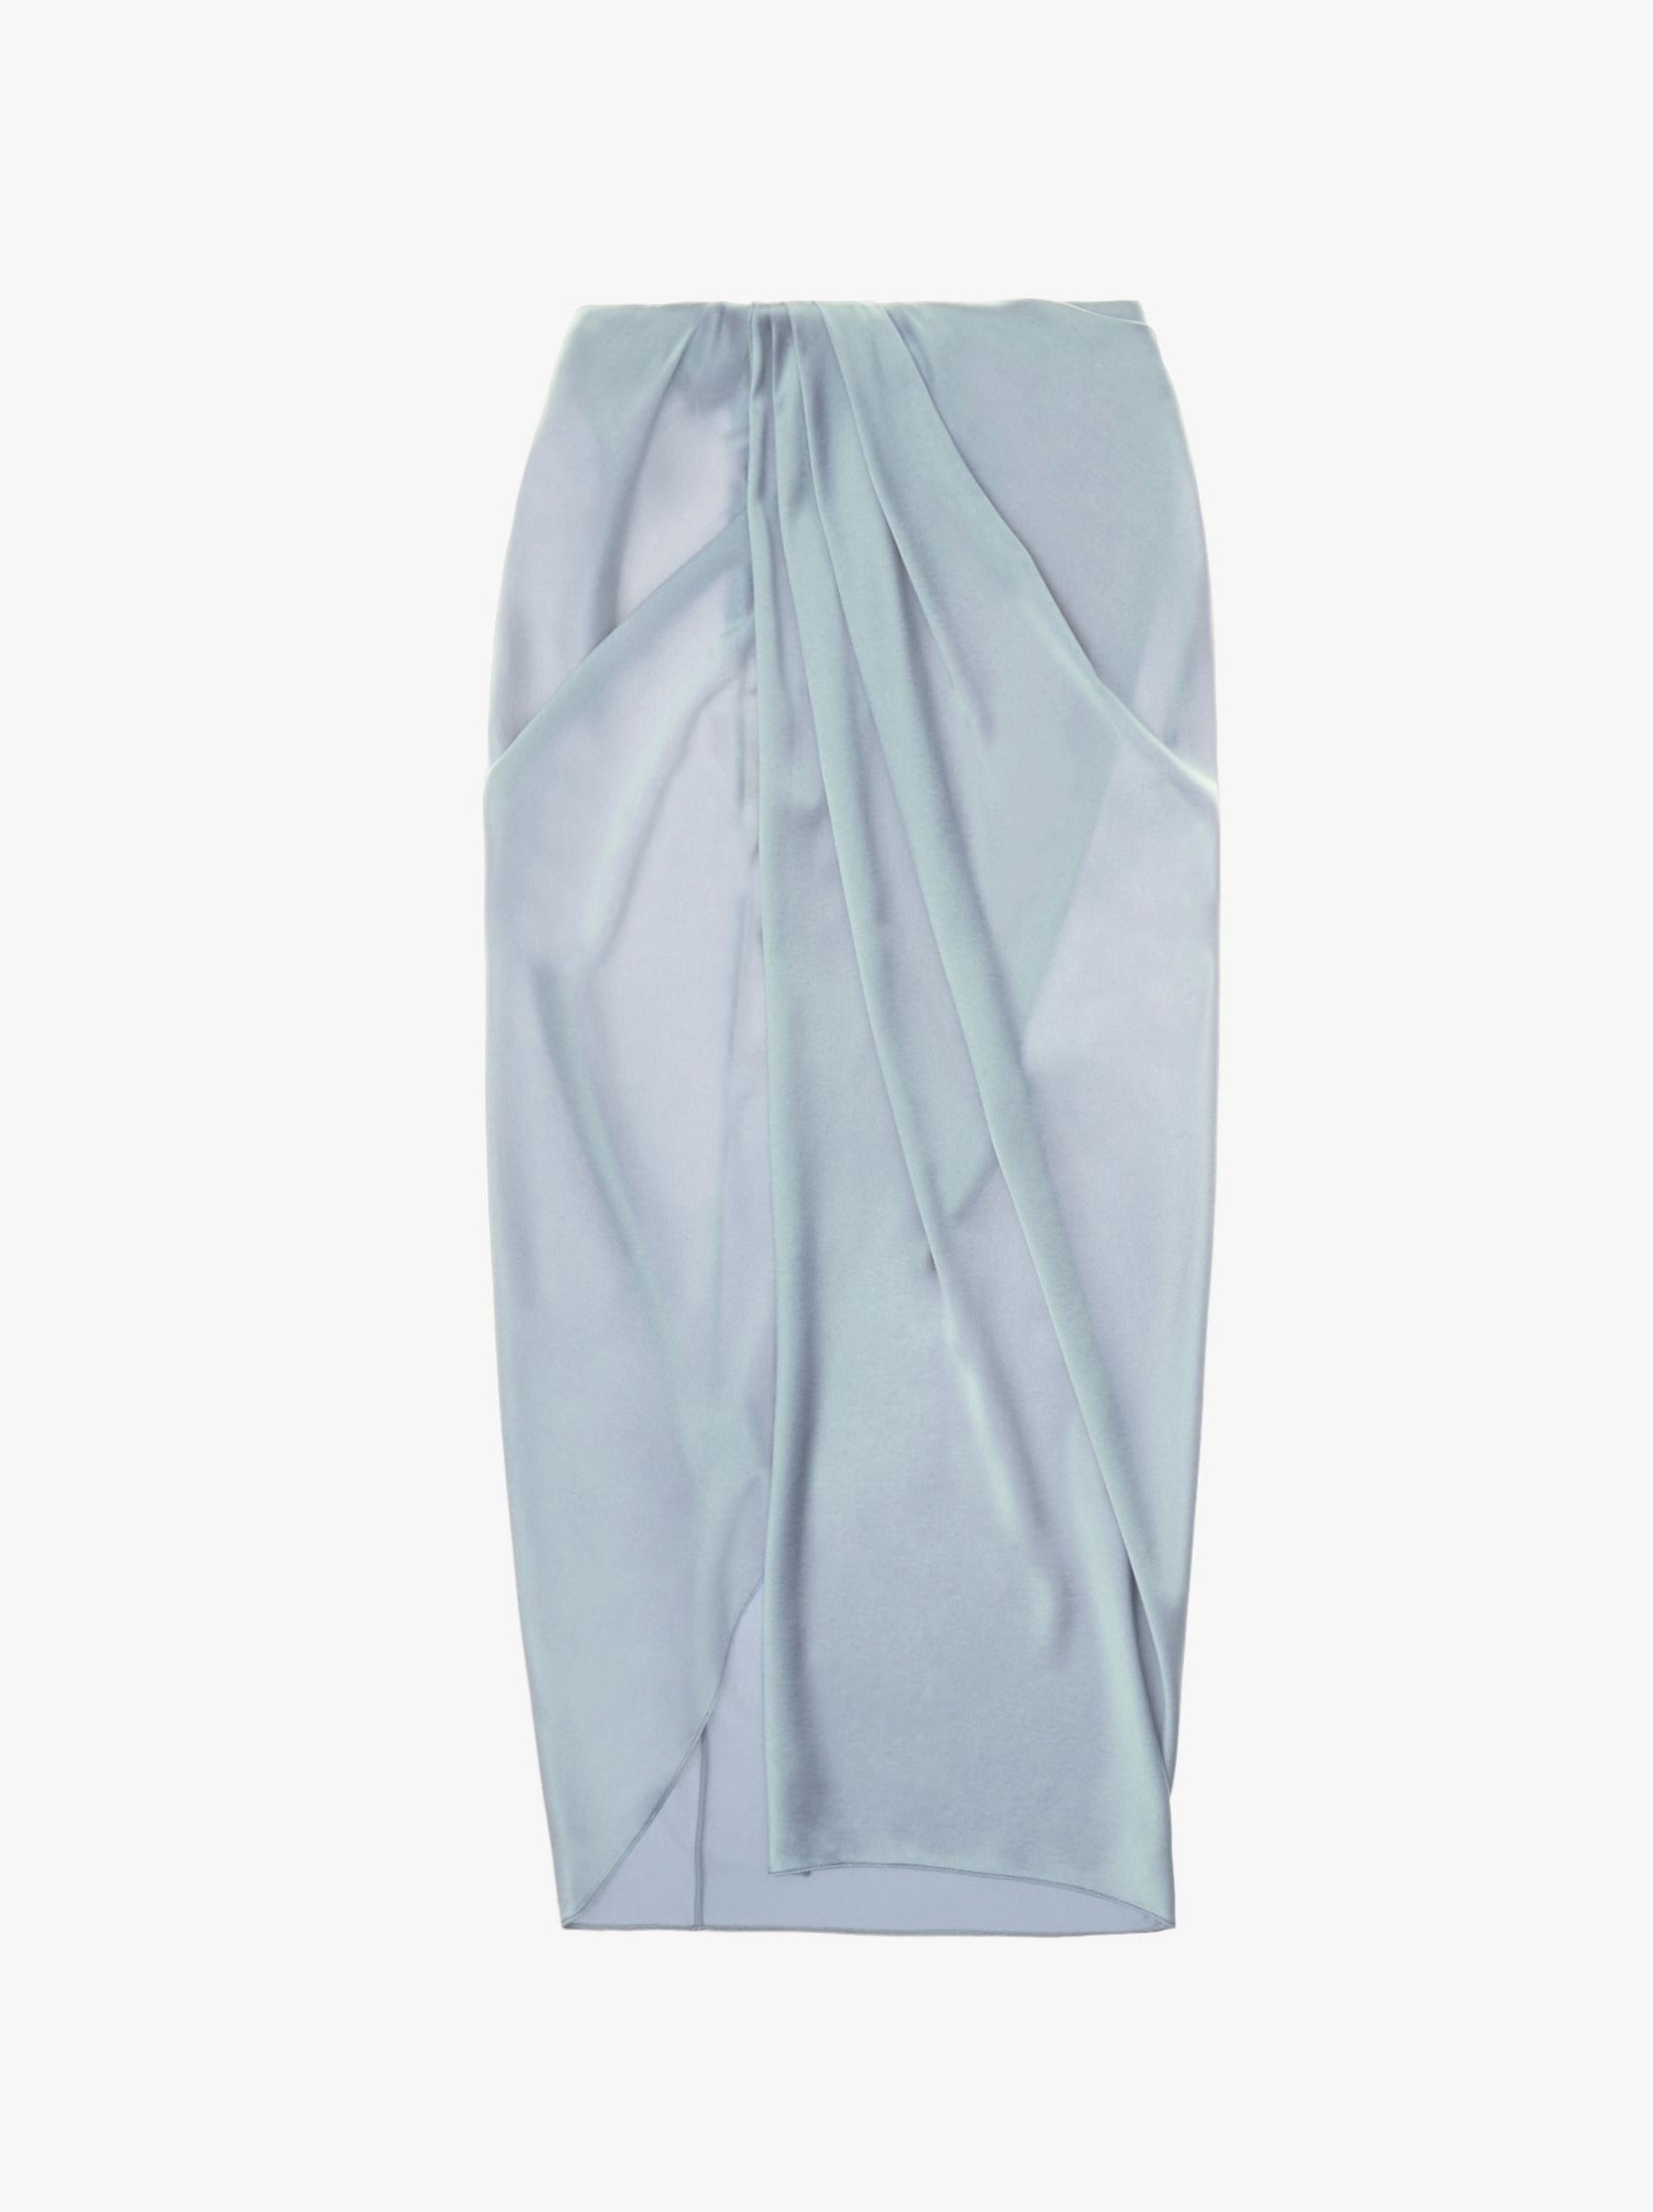 ASH BLUE RUCHED SILK SKIRT